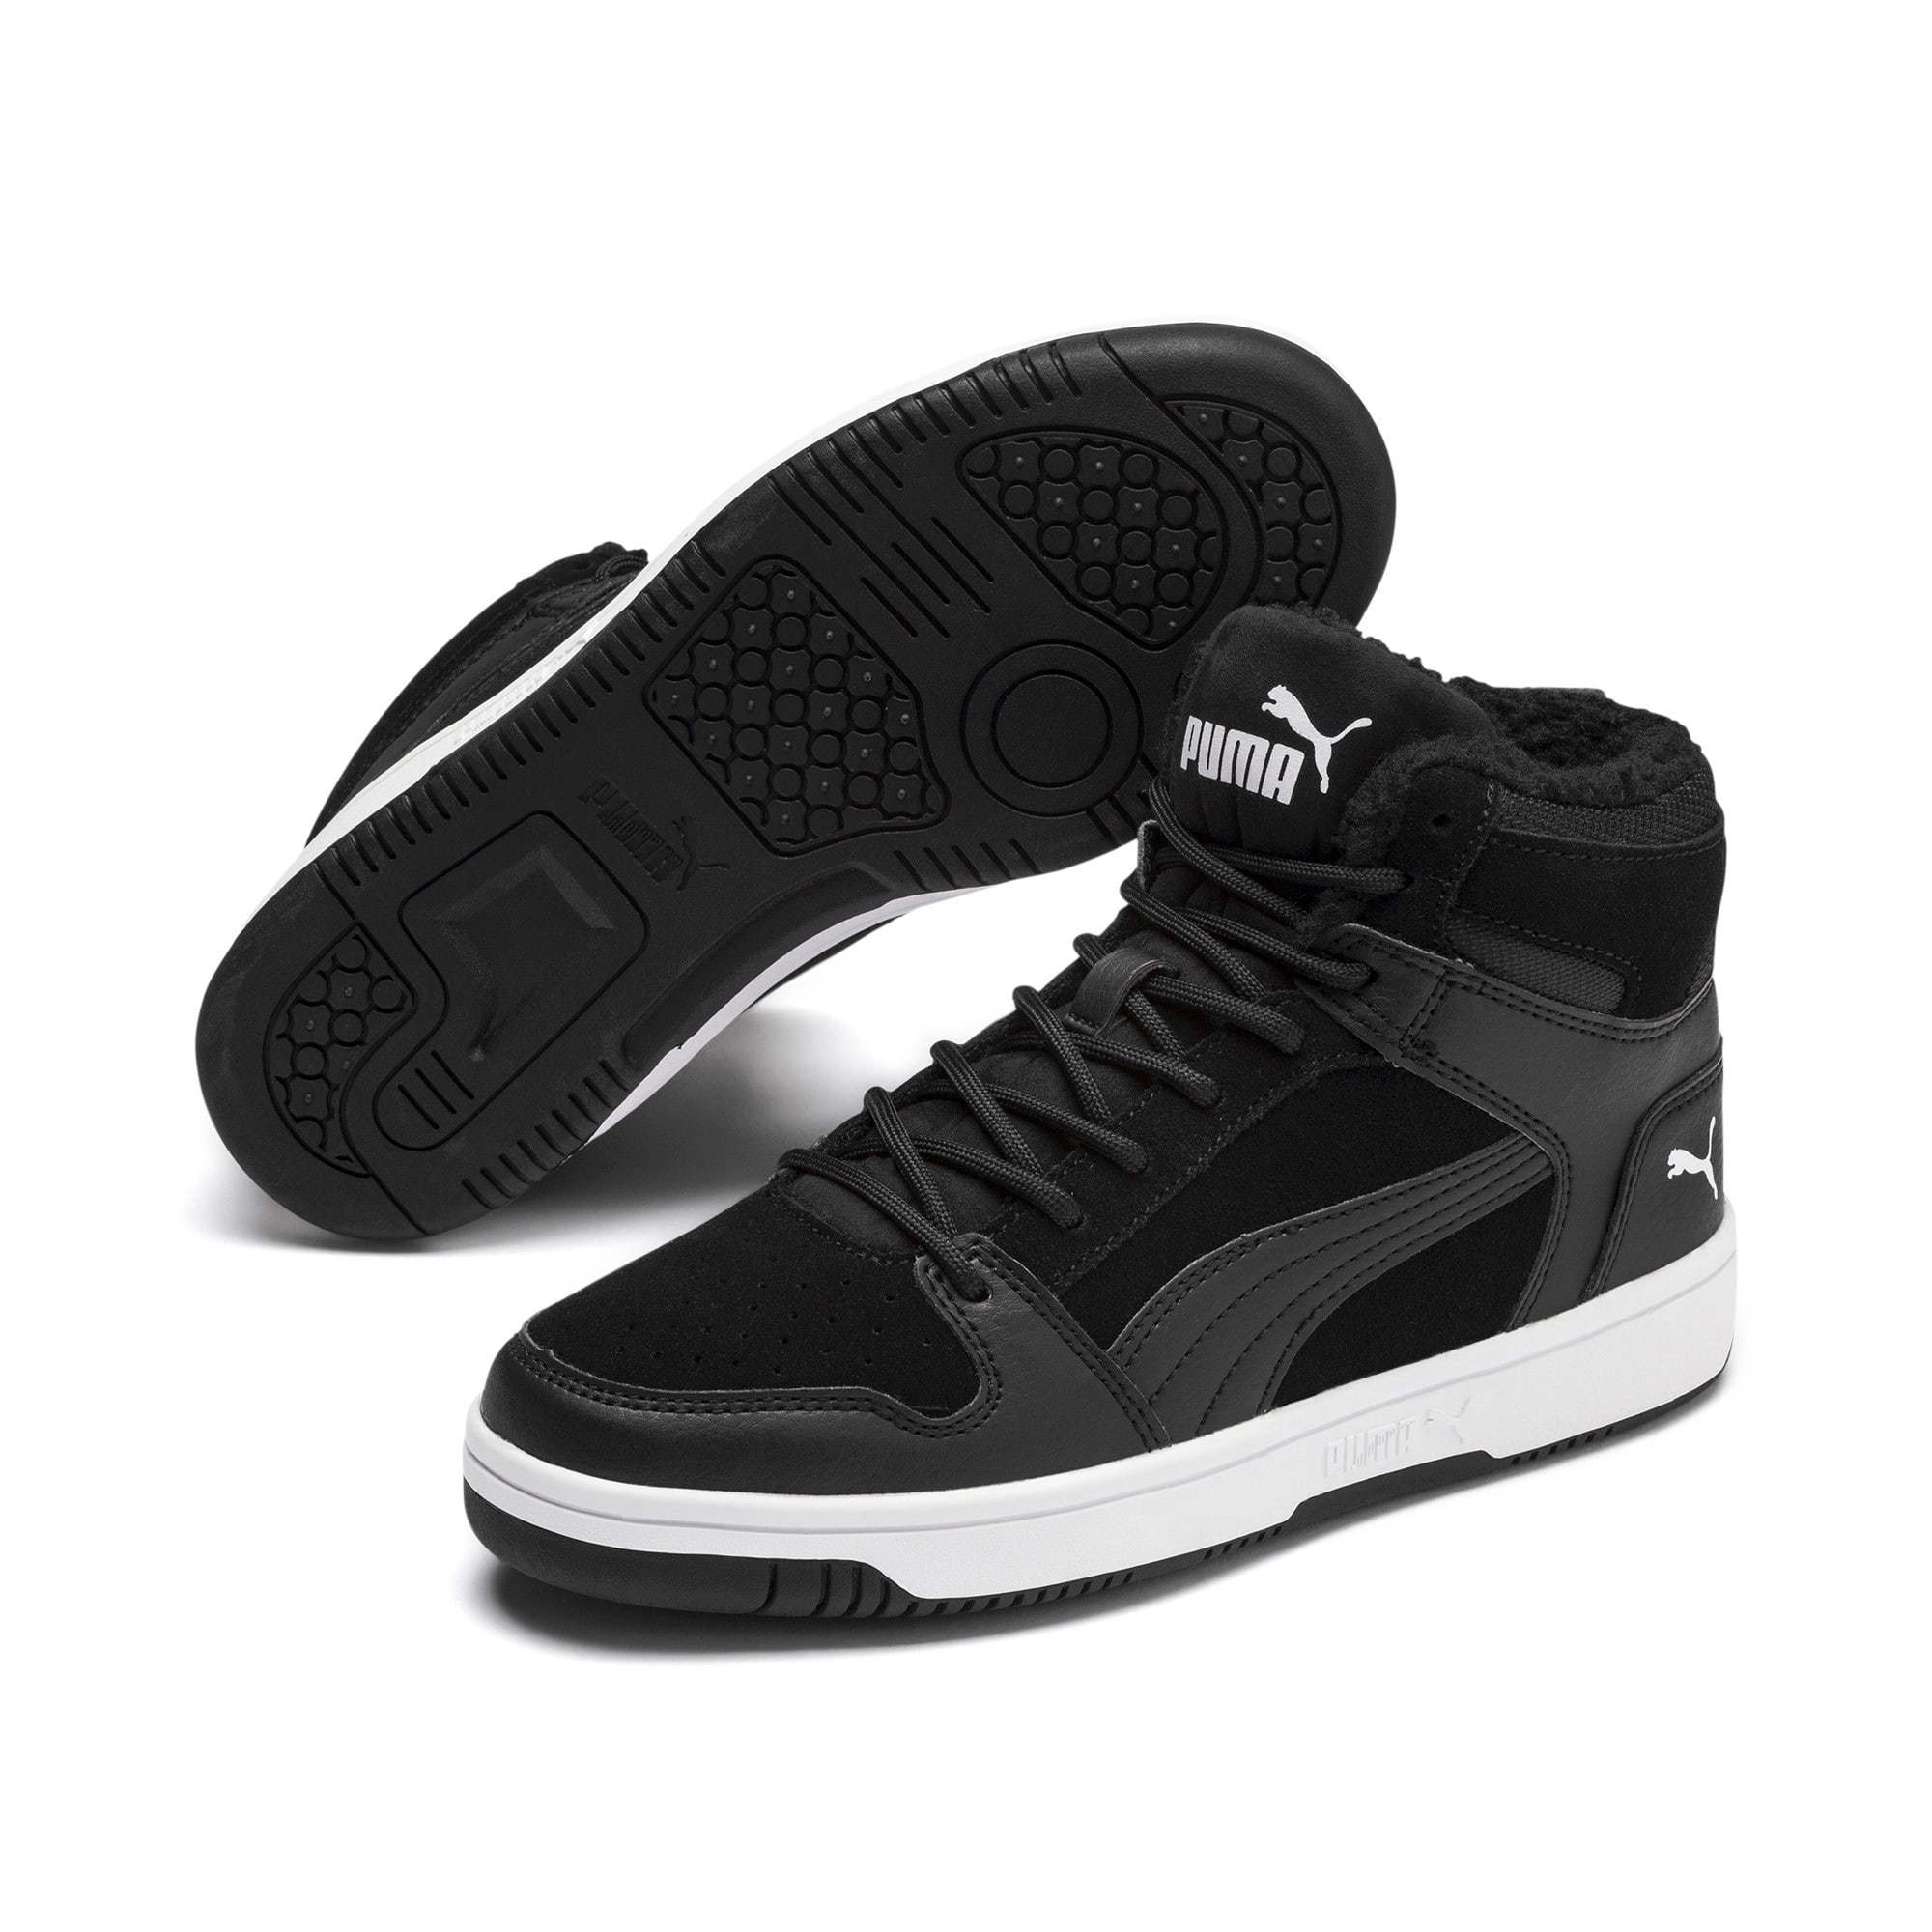 Thumbnail 2 of Rebound Lay-Up Fur SD Youth Trainers, Puma Black-Puma White, medium